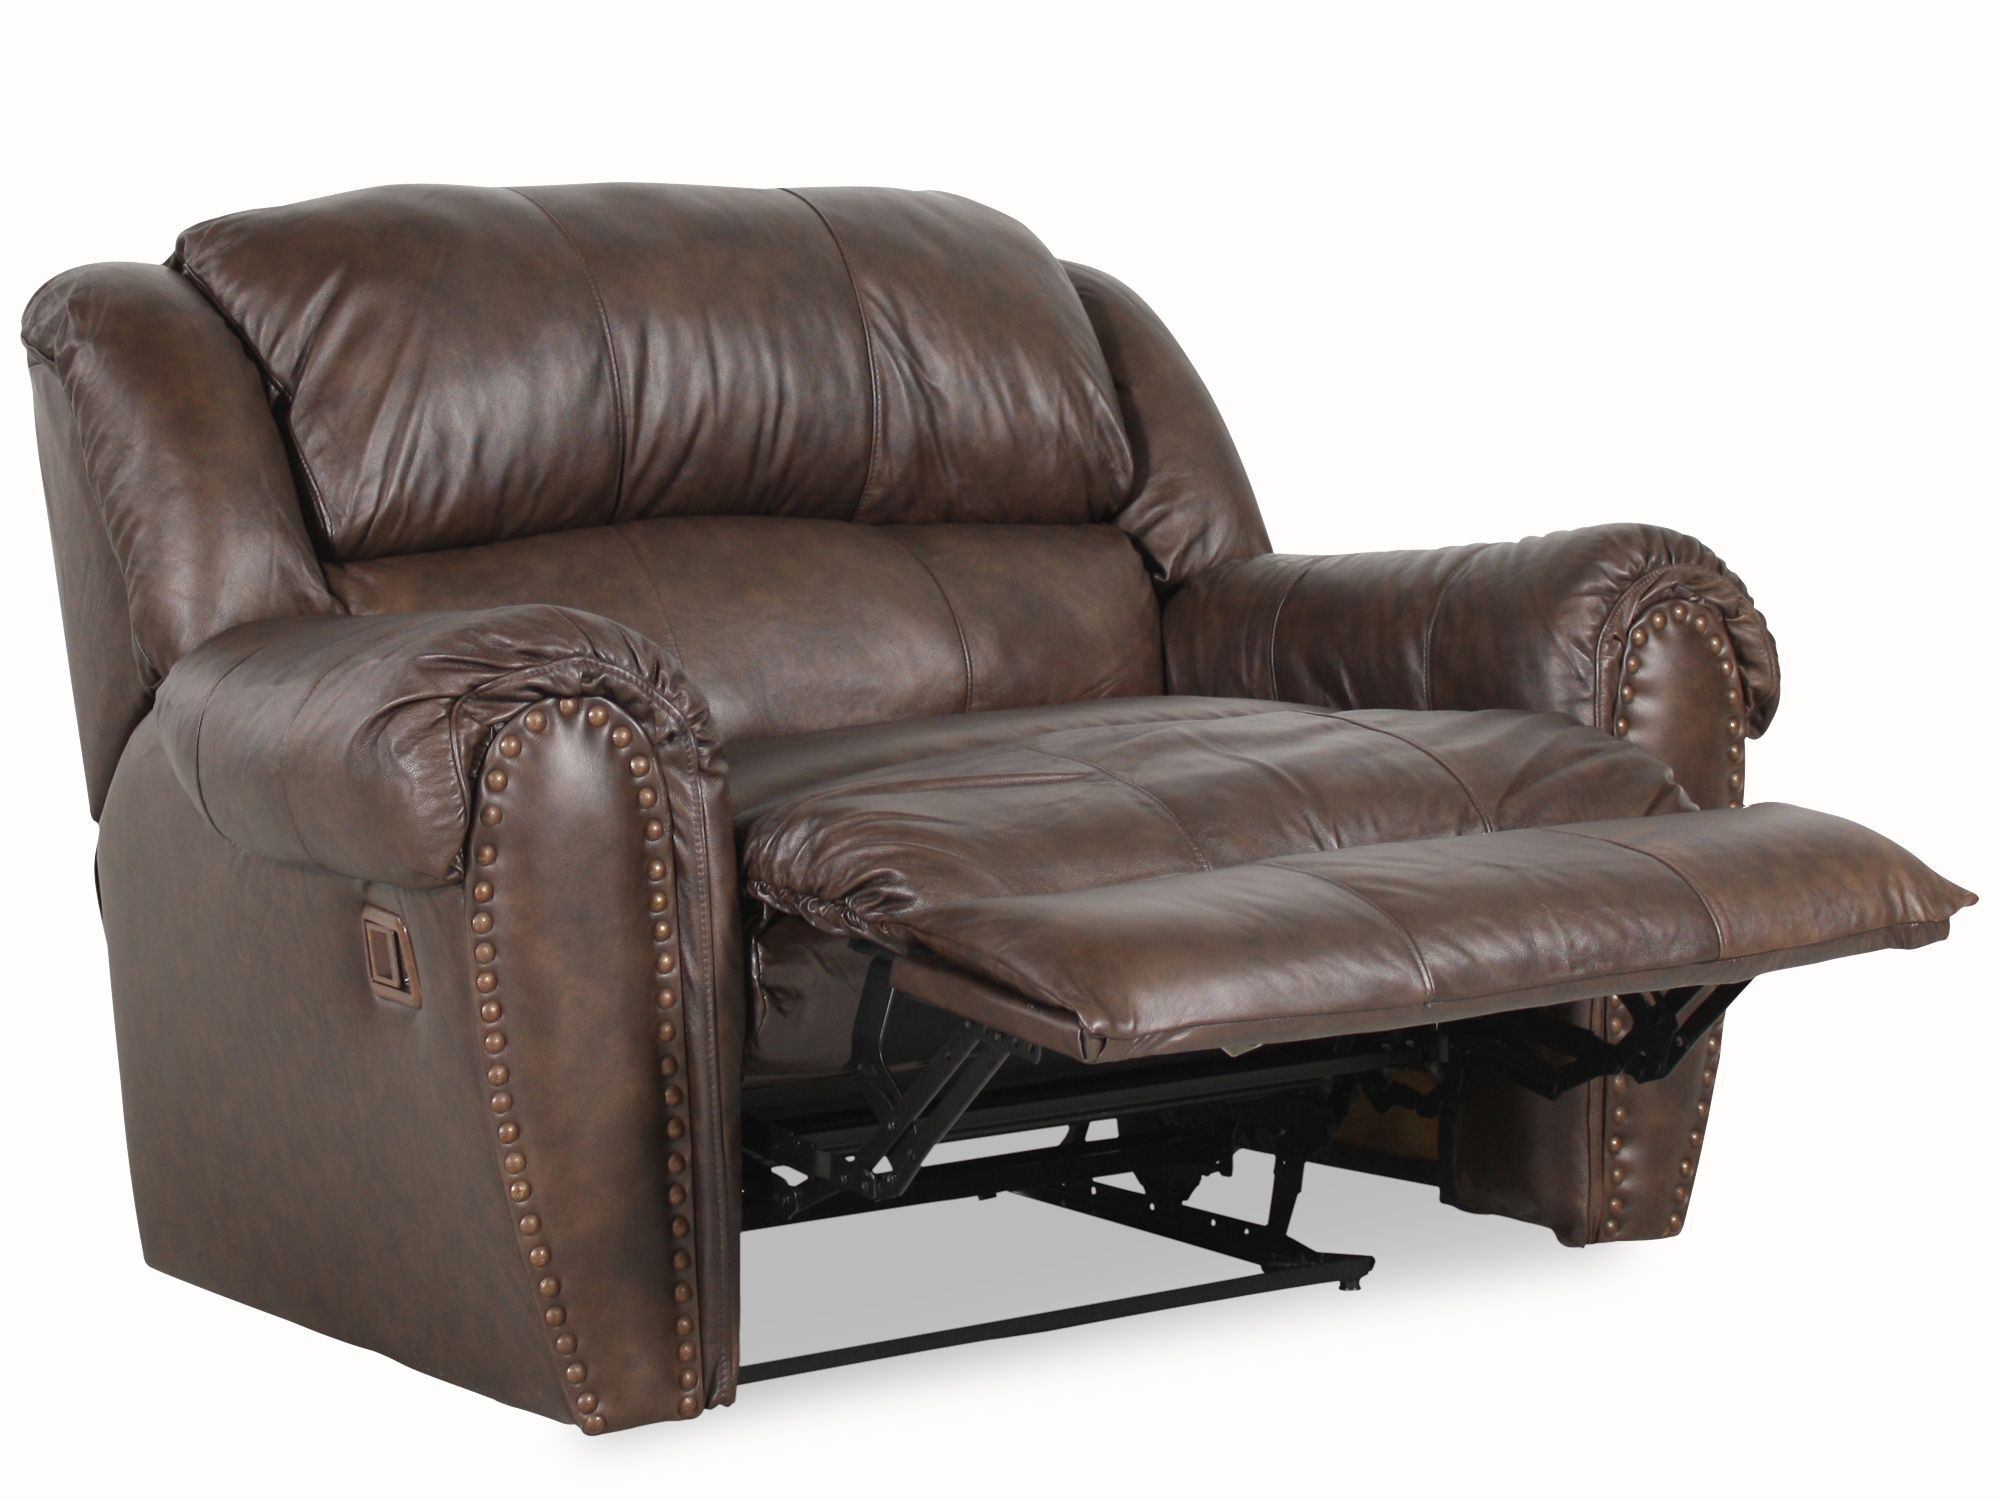 Nailhead Accented Leather Snuggler Recliner ...